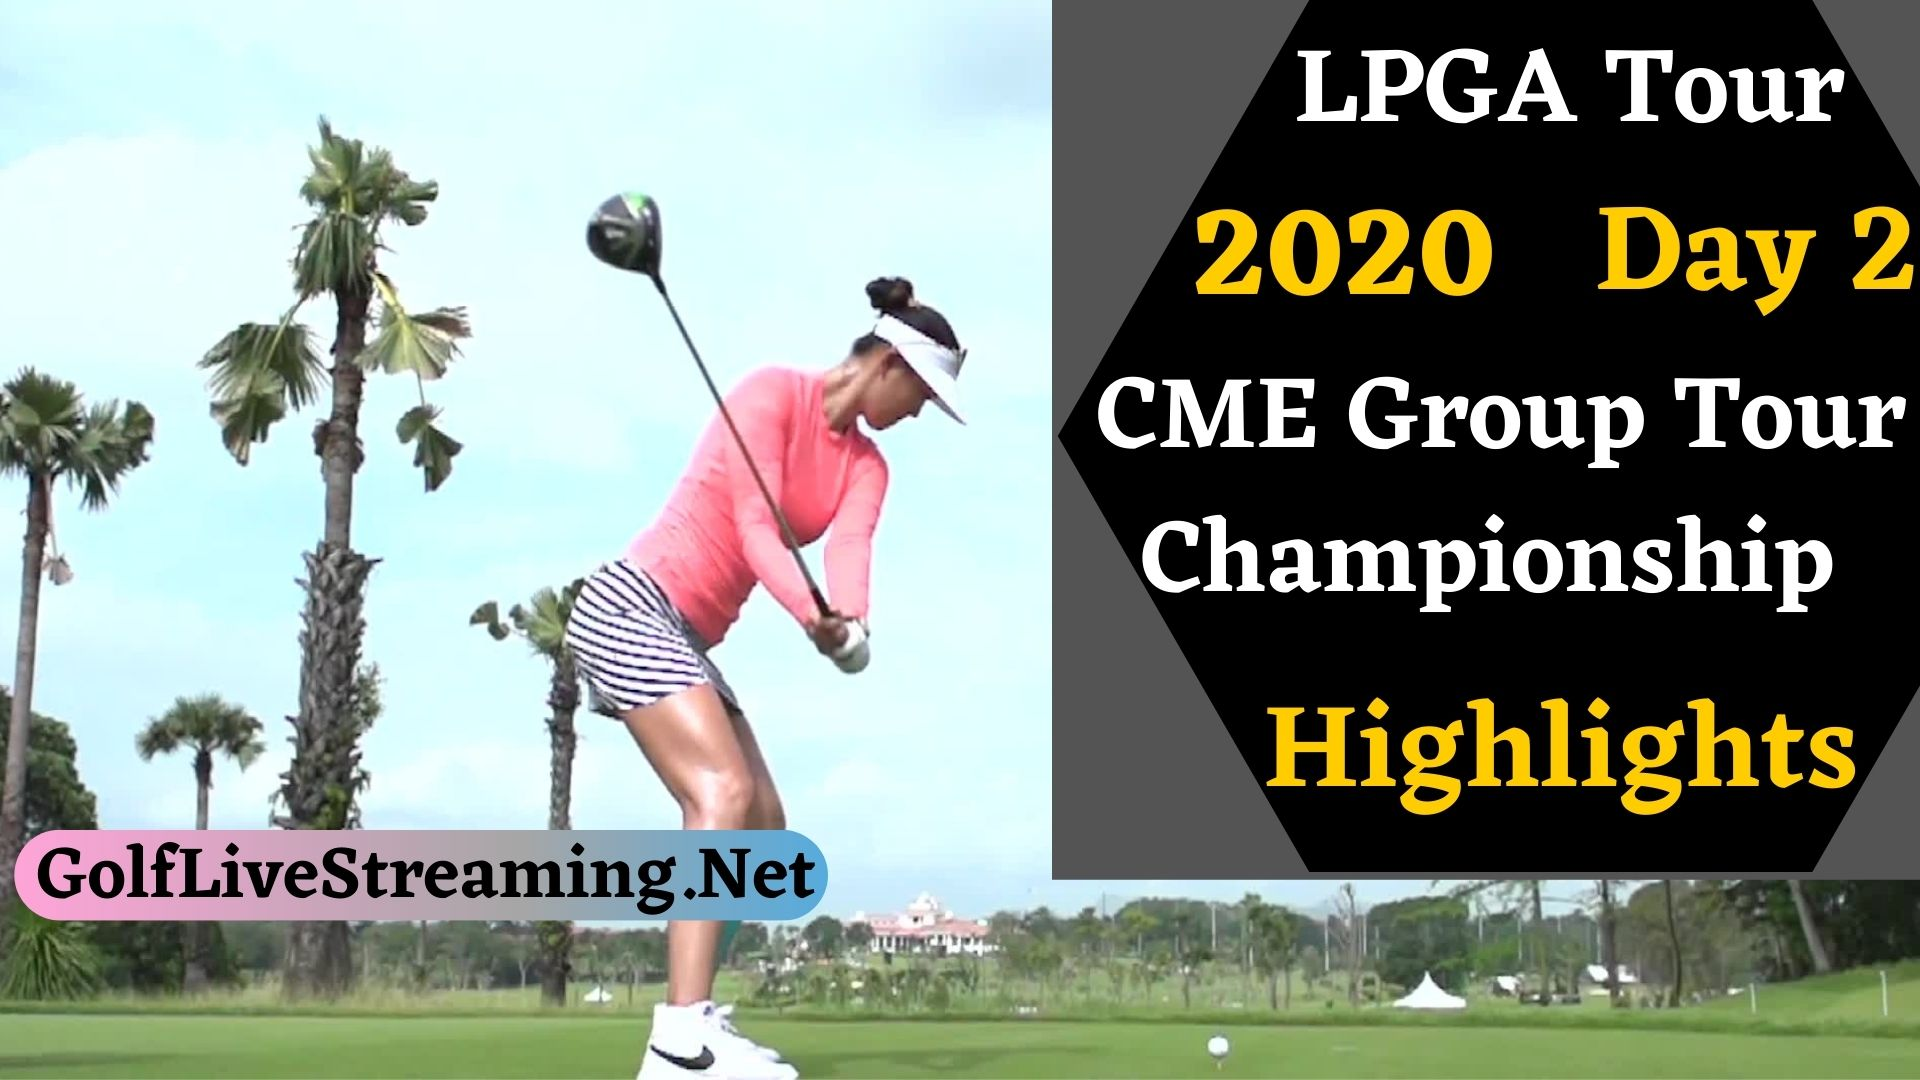 CME Group Tour Championship Day 2 Highlights 2020 LPGA Tour